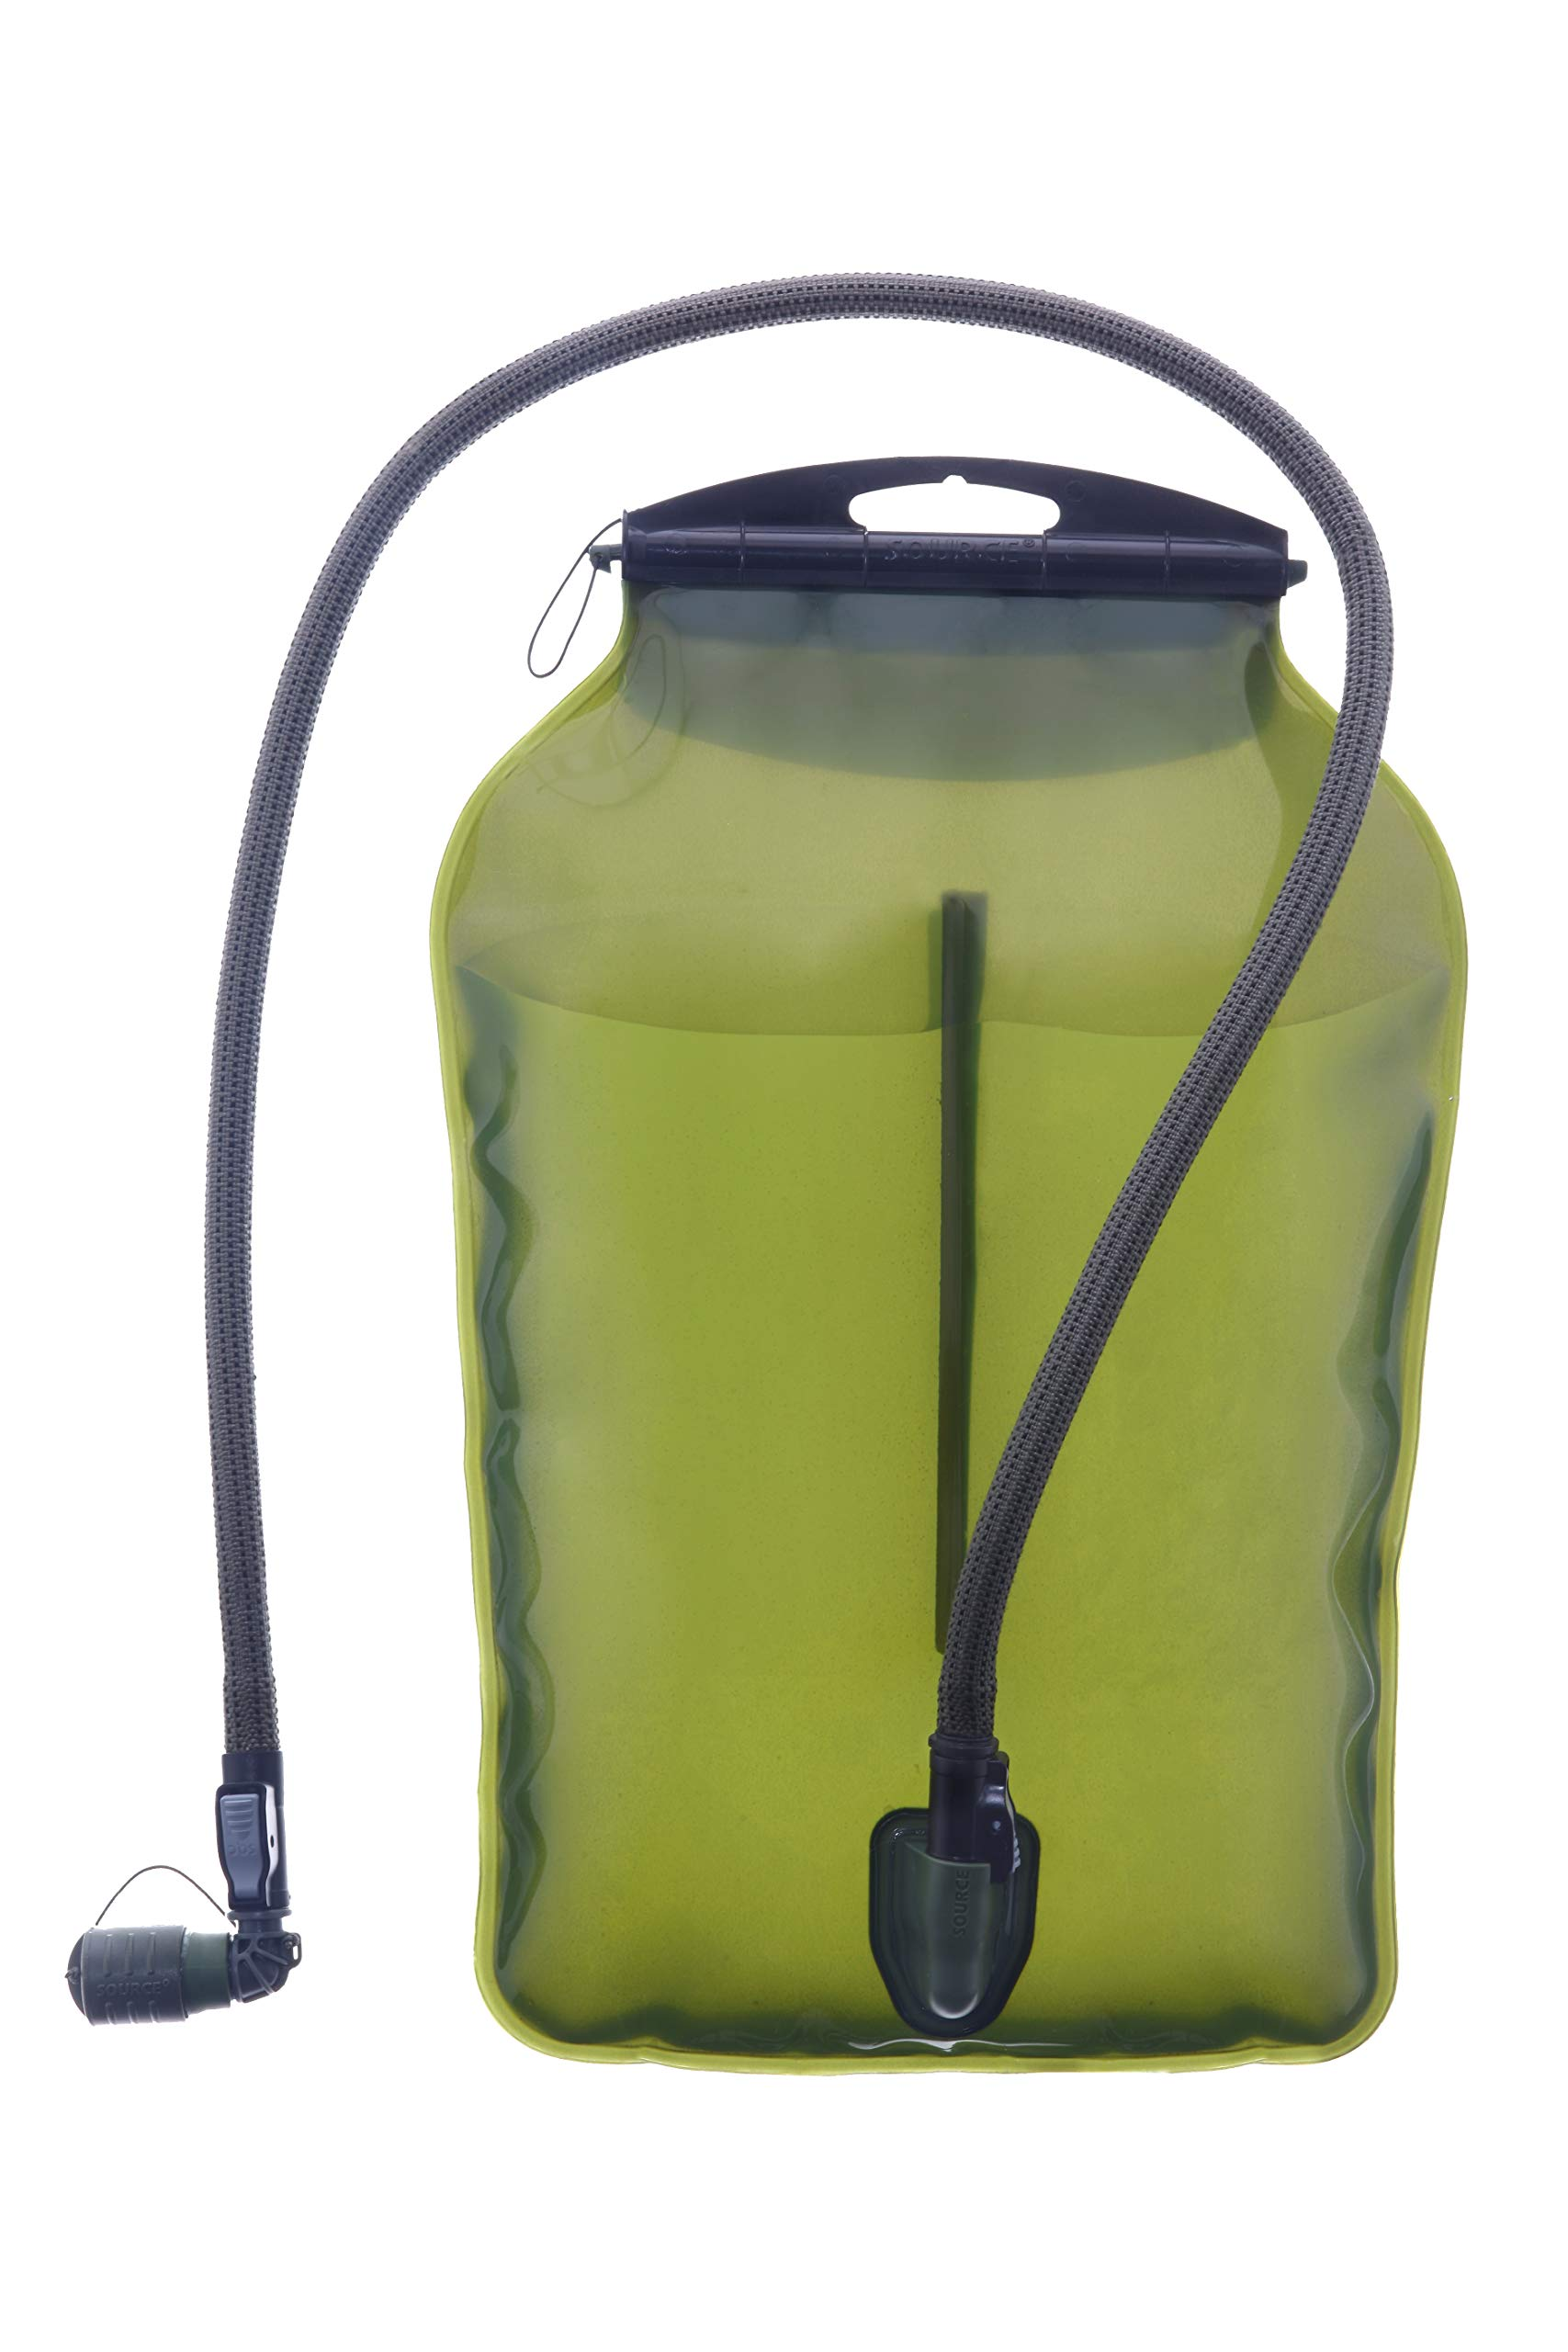 Source Tactical Gear Widepac Low Profile 3-Liter Hydration Pack, Foliage by Source Tactical Gear